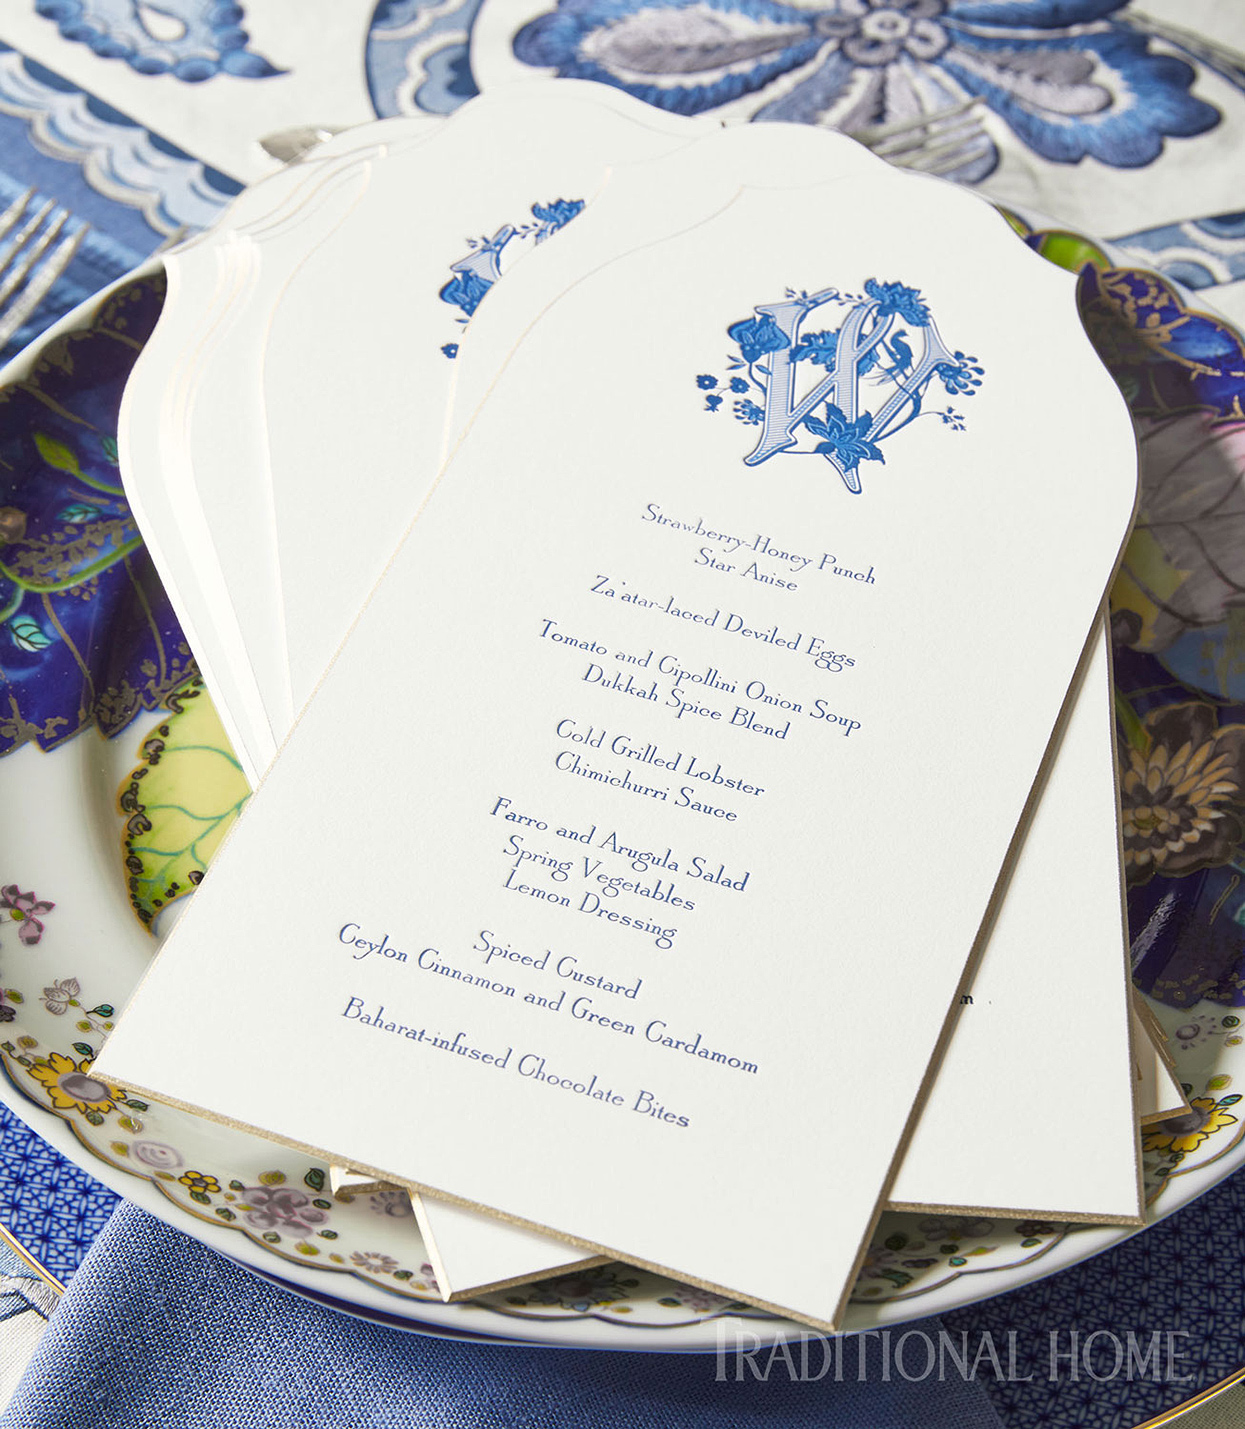 traditional menus with blue monogram on plate